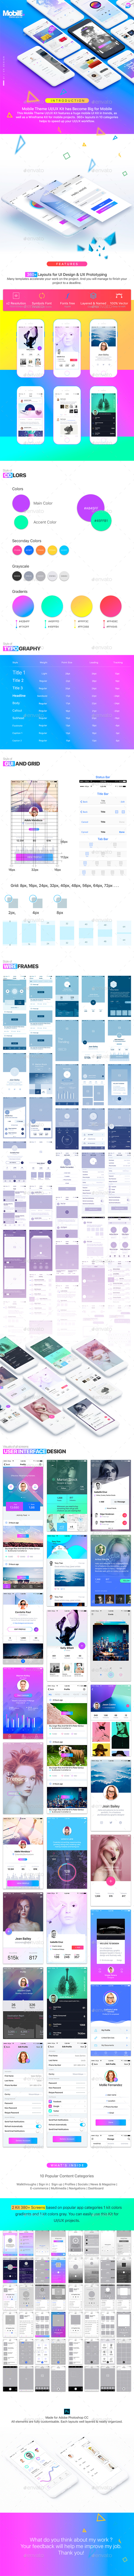 UI Elements (User Interfaces)